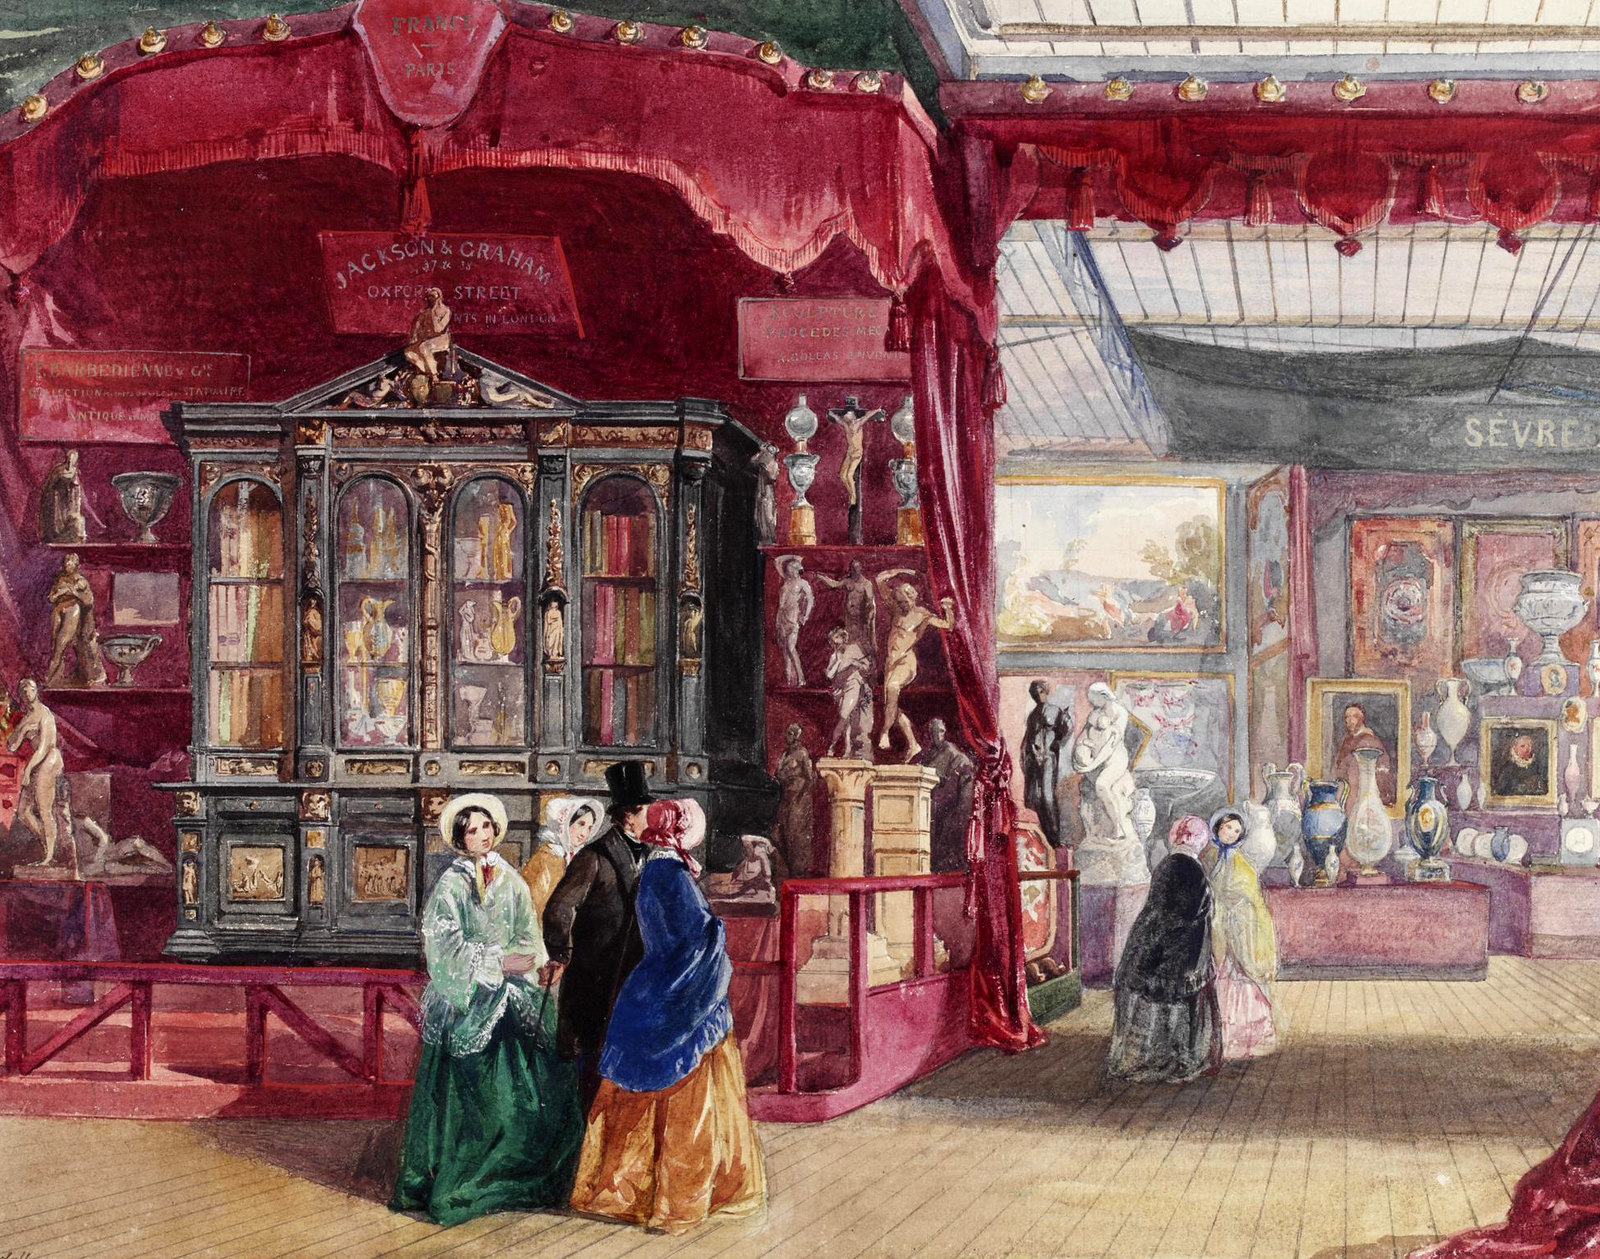 'Part of the French Court, No. 1 (Sèvres)', with a display of porcelain by the Sèvres factory visible in the background. © Victoria and Albert Museum, London